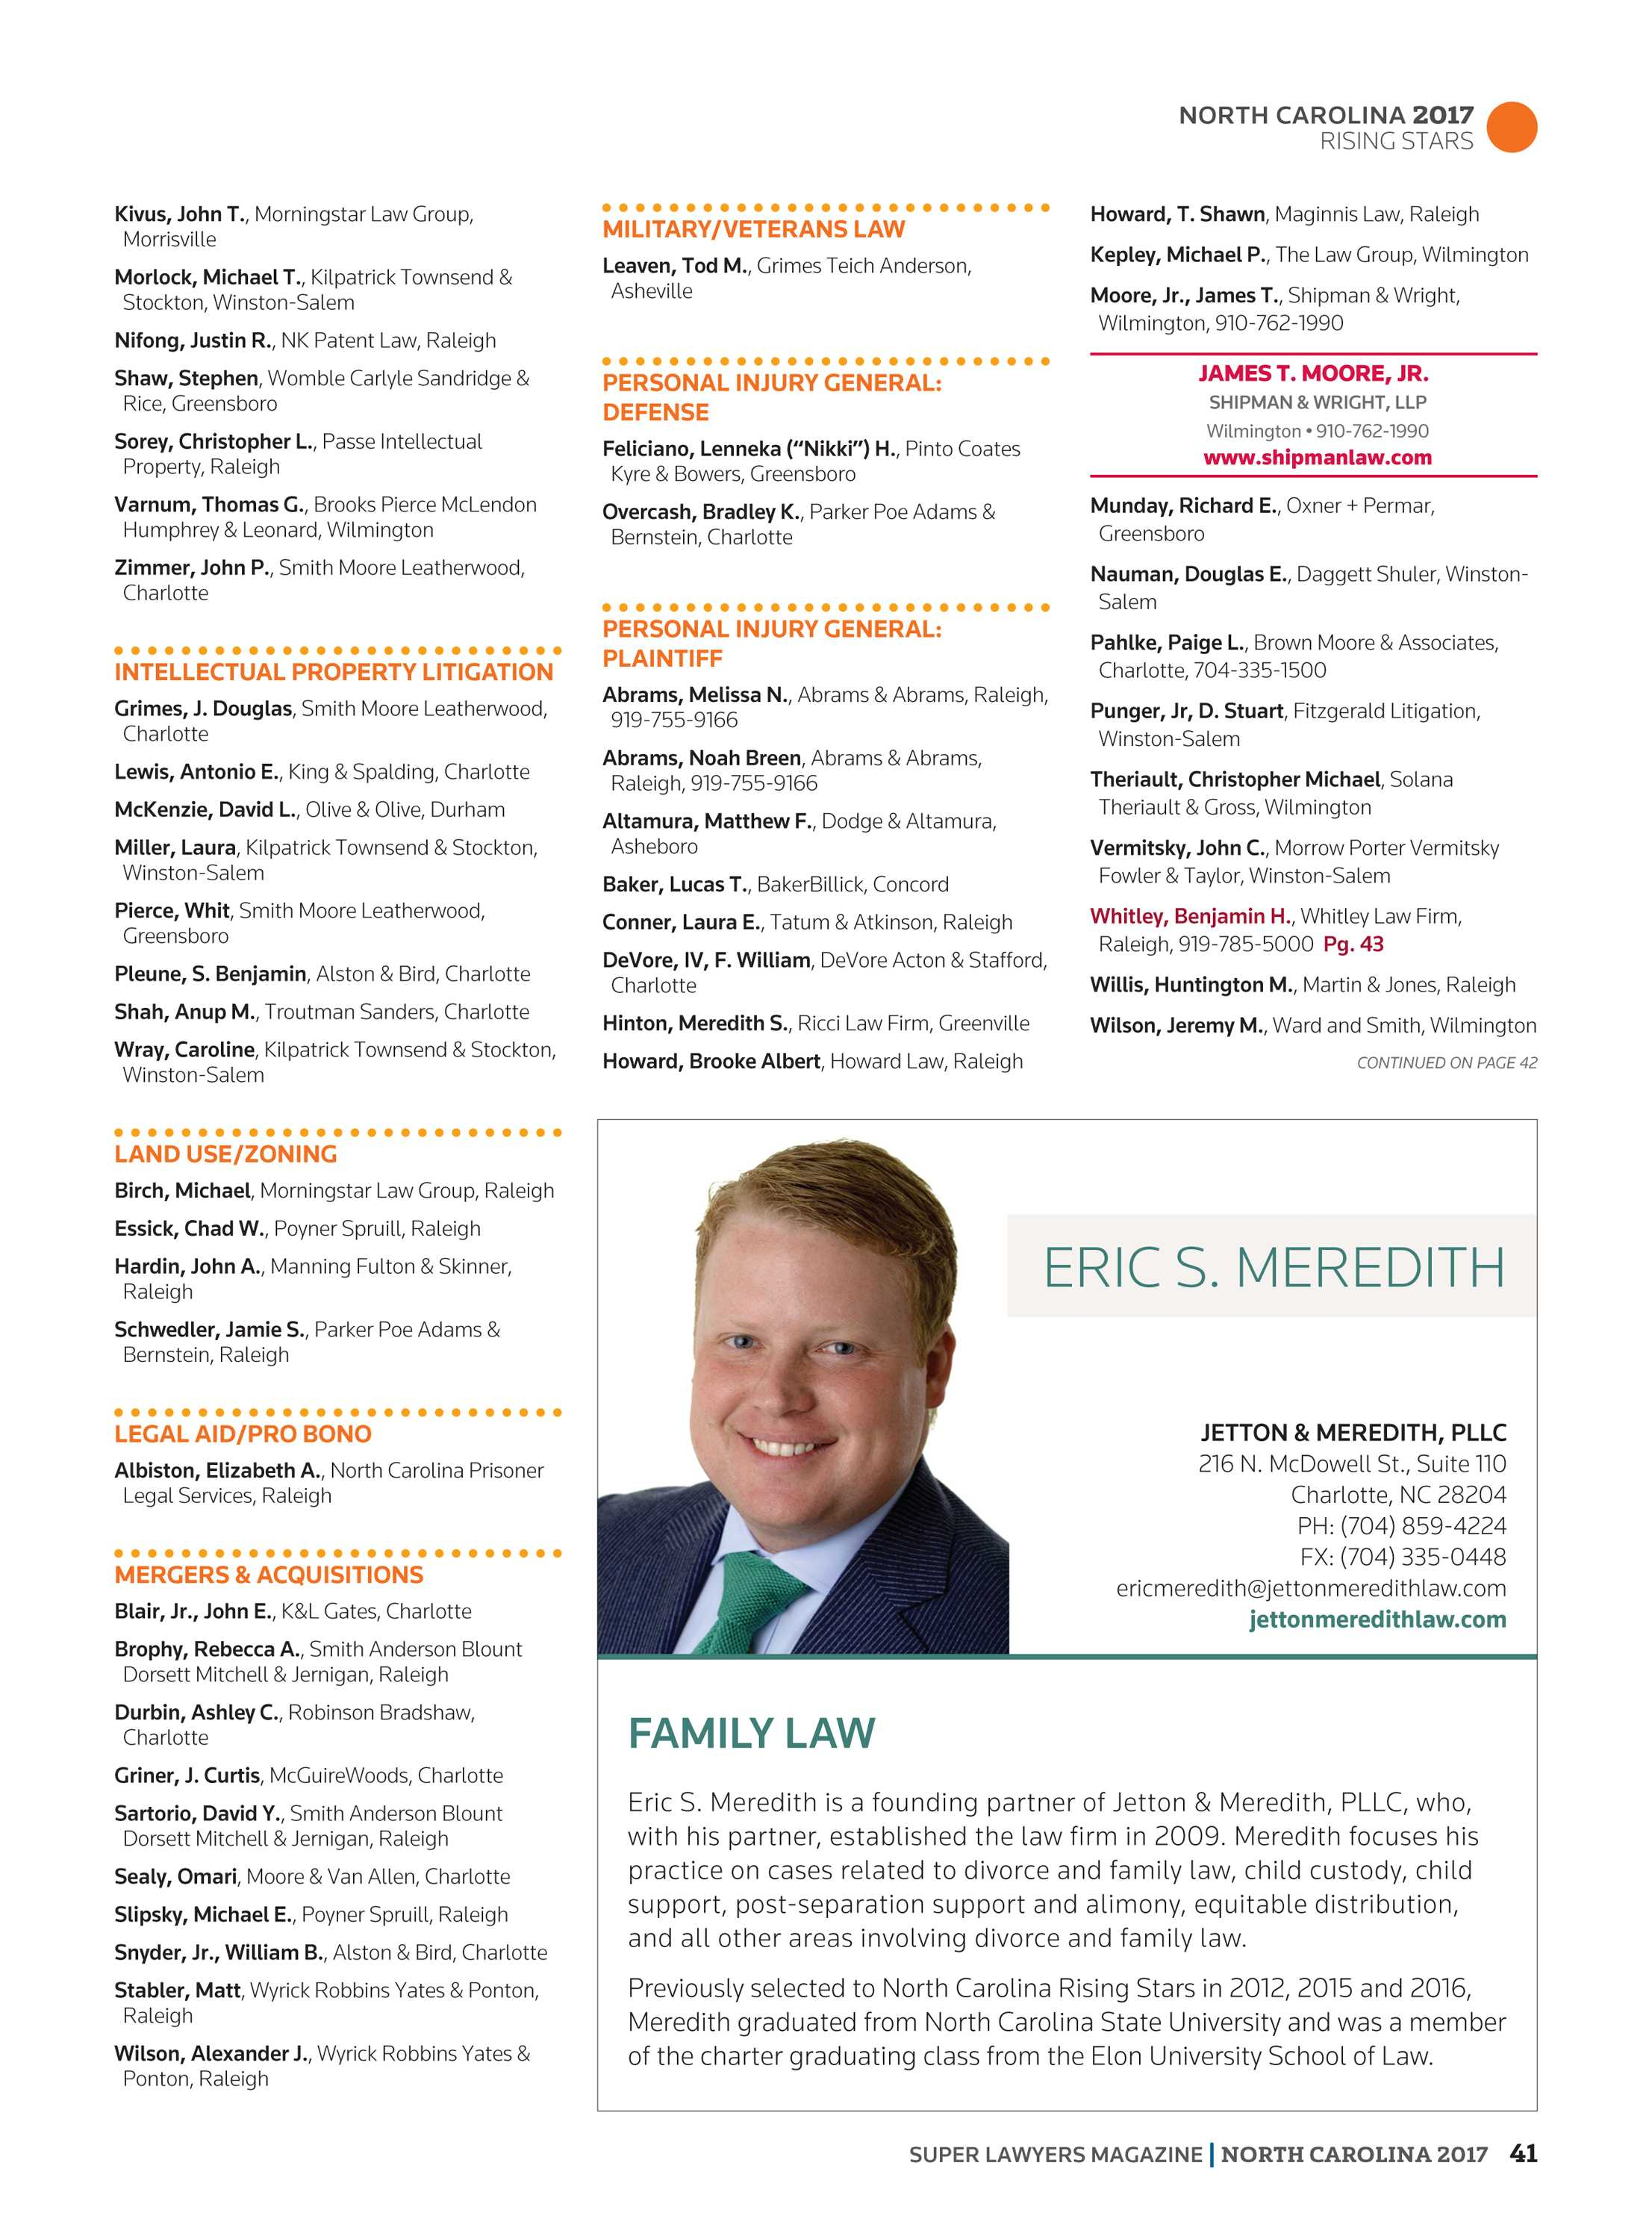 Super Lawyers - Business Edition 2011 - page 41